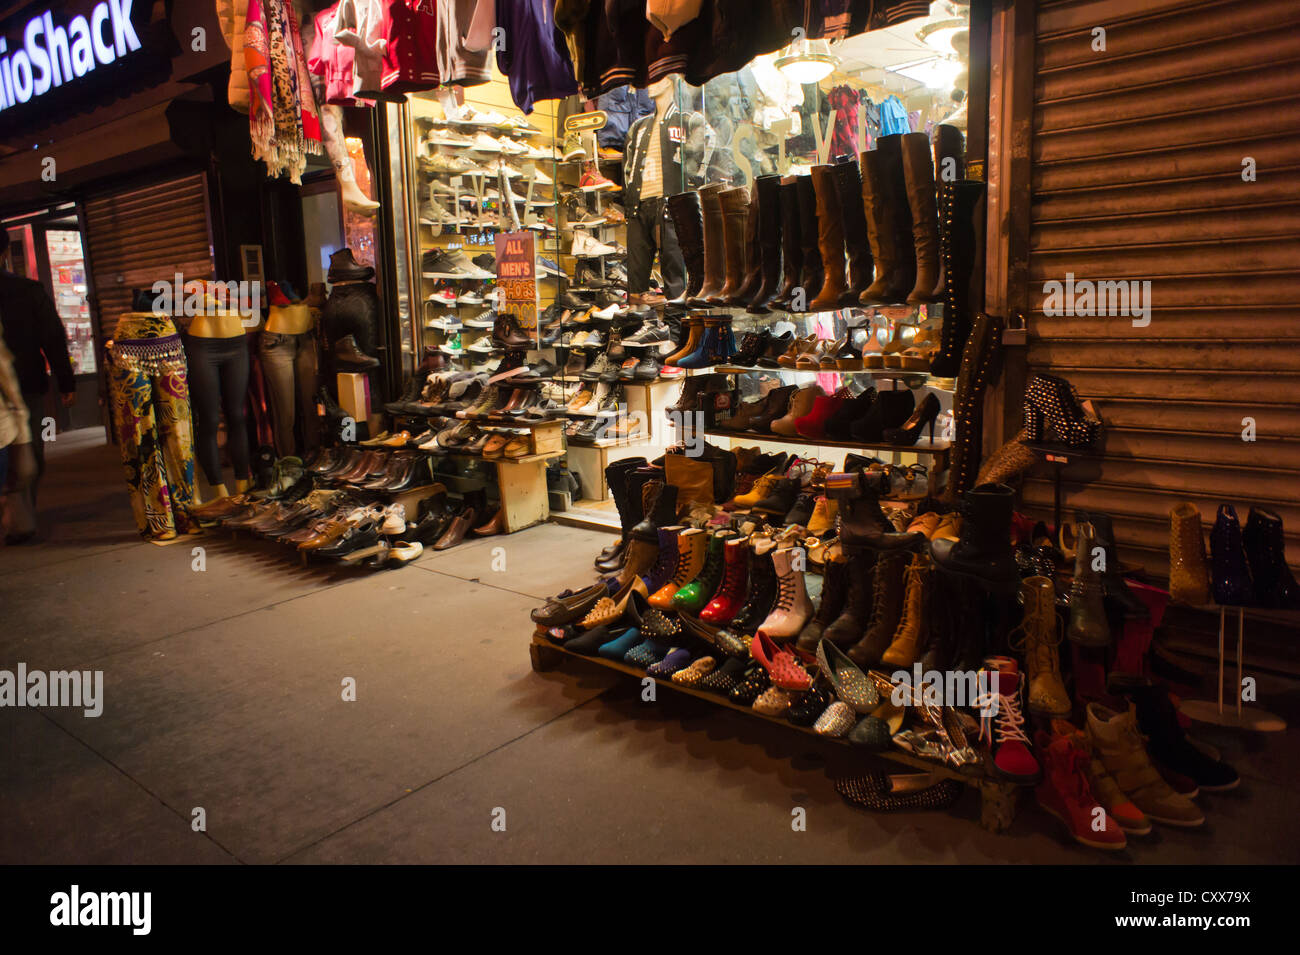 Hotter Shoe Shop In Southport